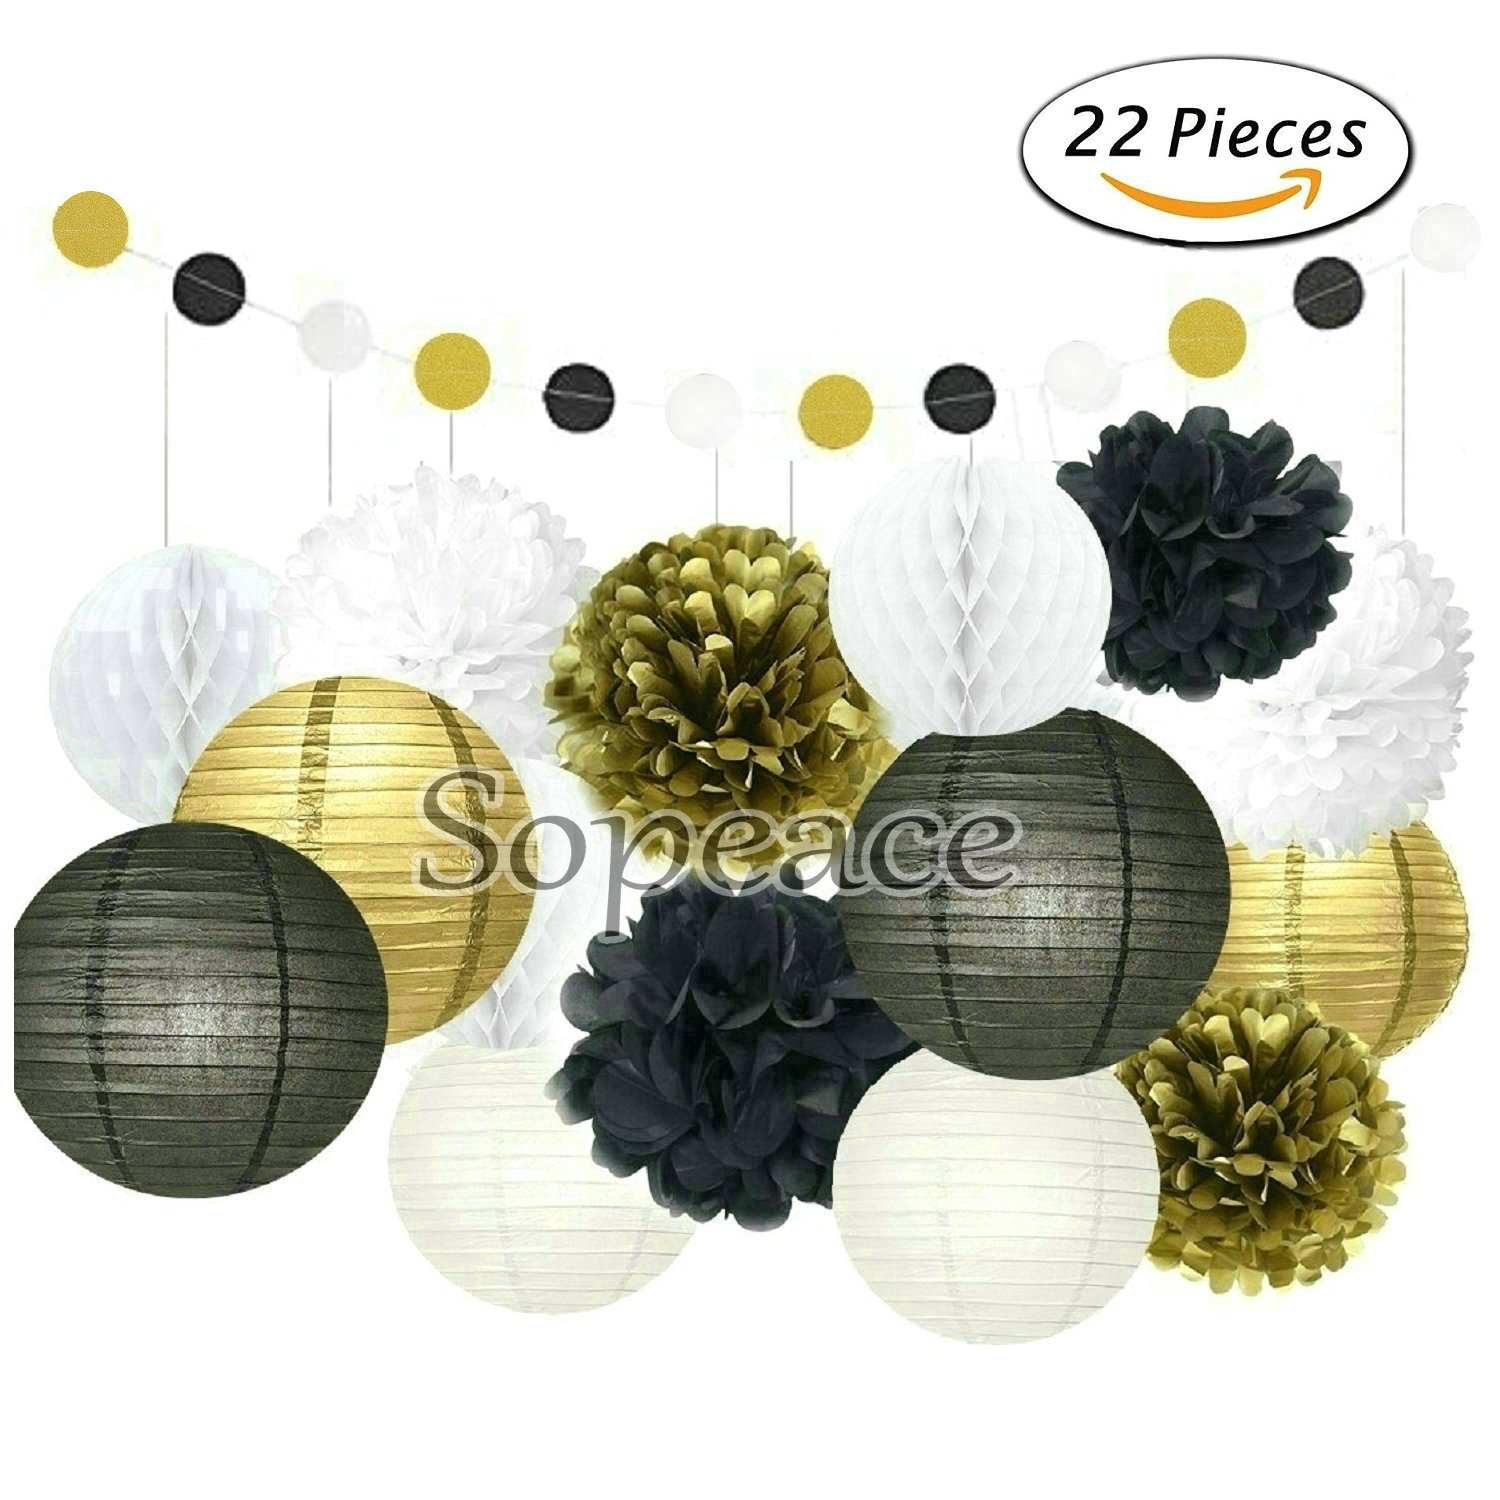 Sopeace 22 PcsMint Gold White Tissue Pom Poms Paper Flowers Paper Lanterns for Birthday Party Decoration